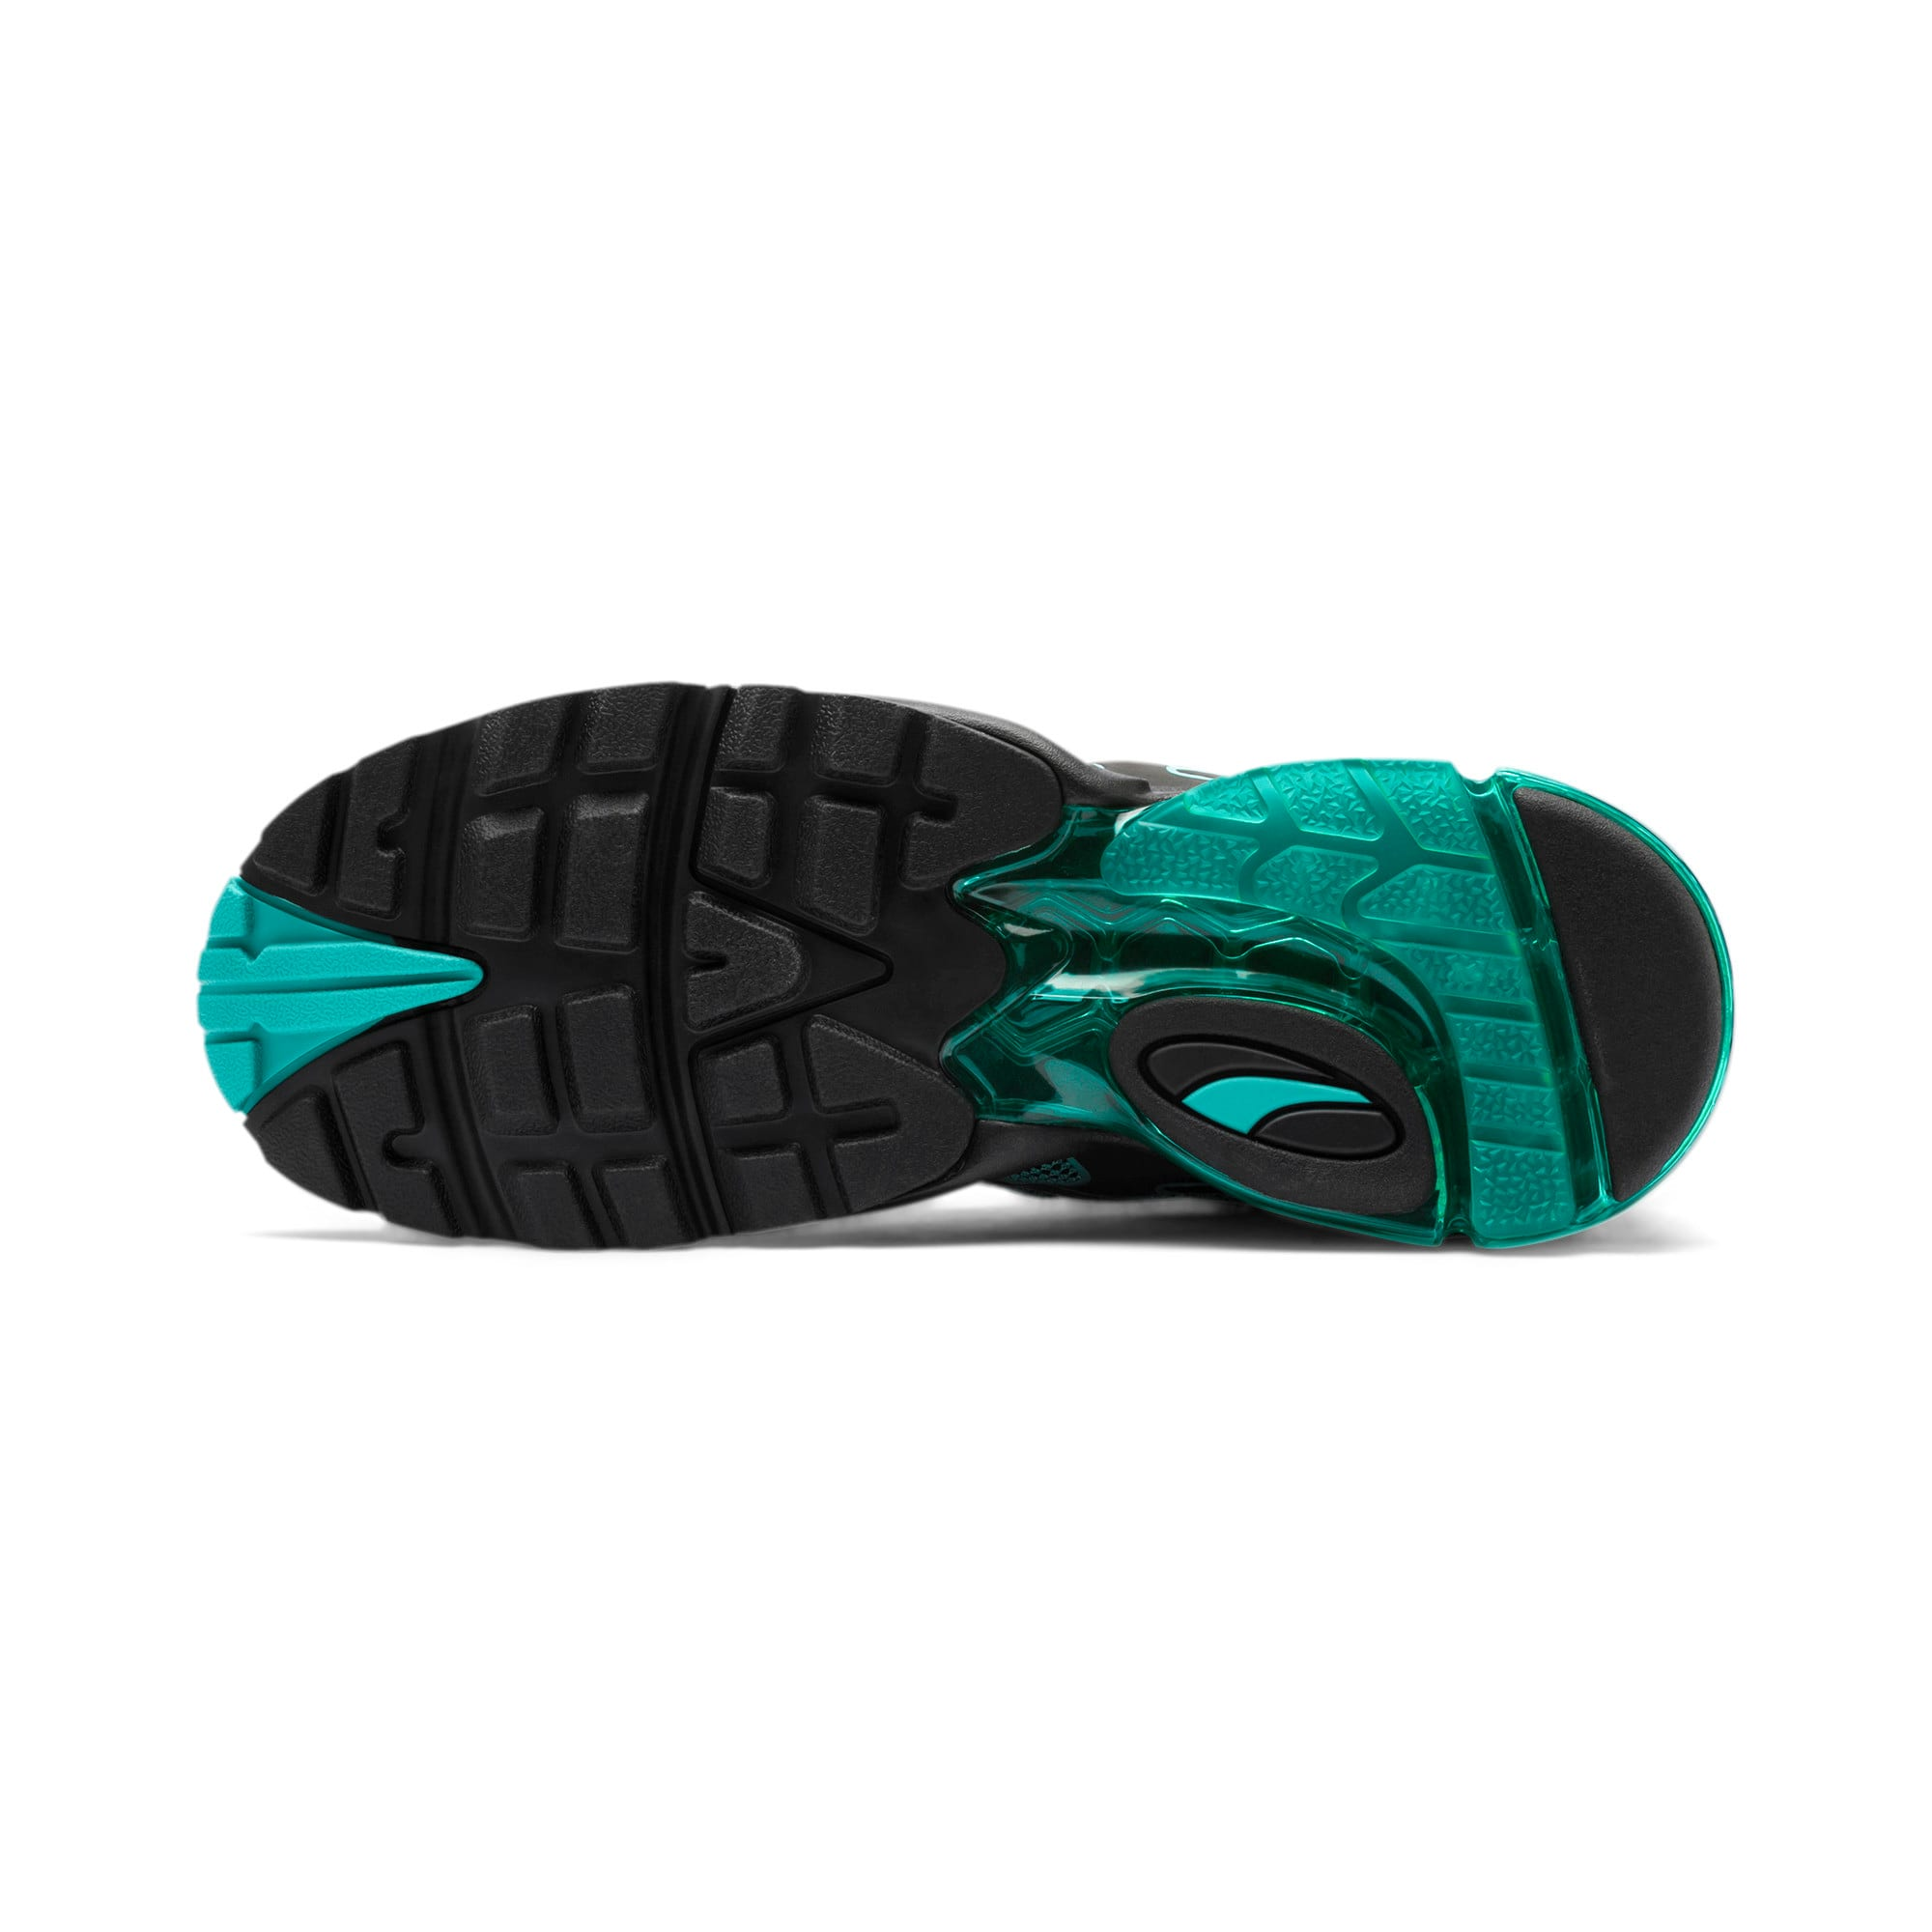 Thumbnail 5 of CELL Alien Kotto Trainers, Puma Black-Blue Turquoise, medium